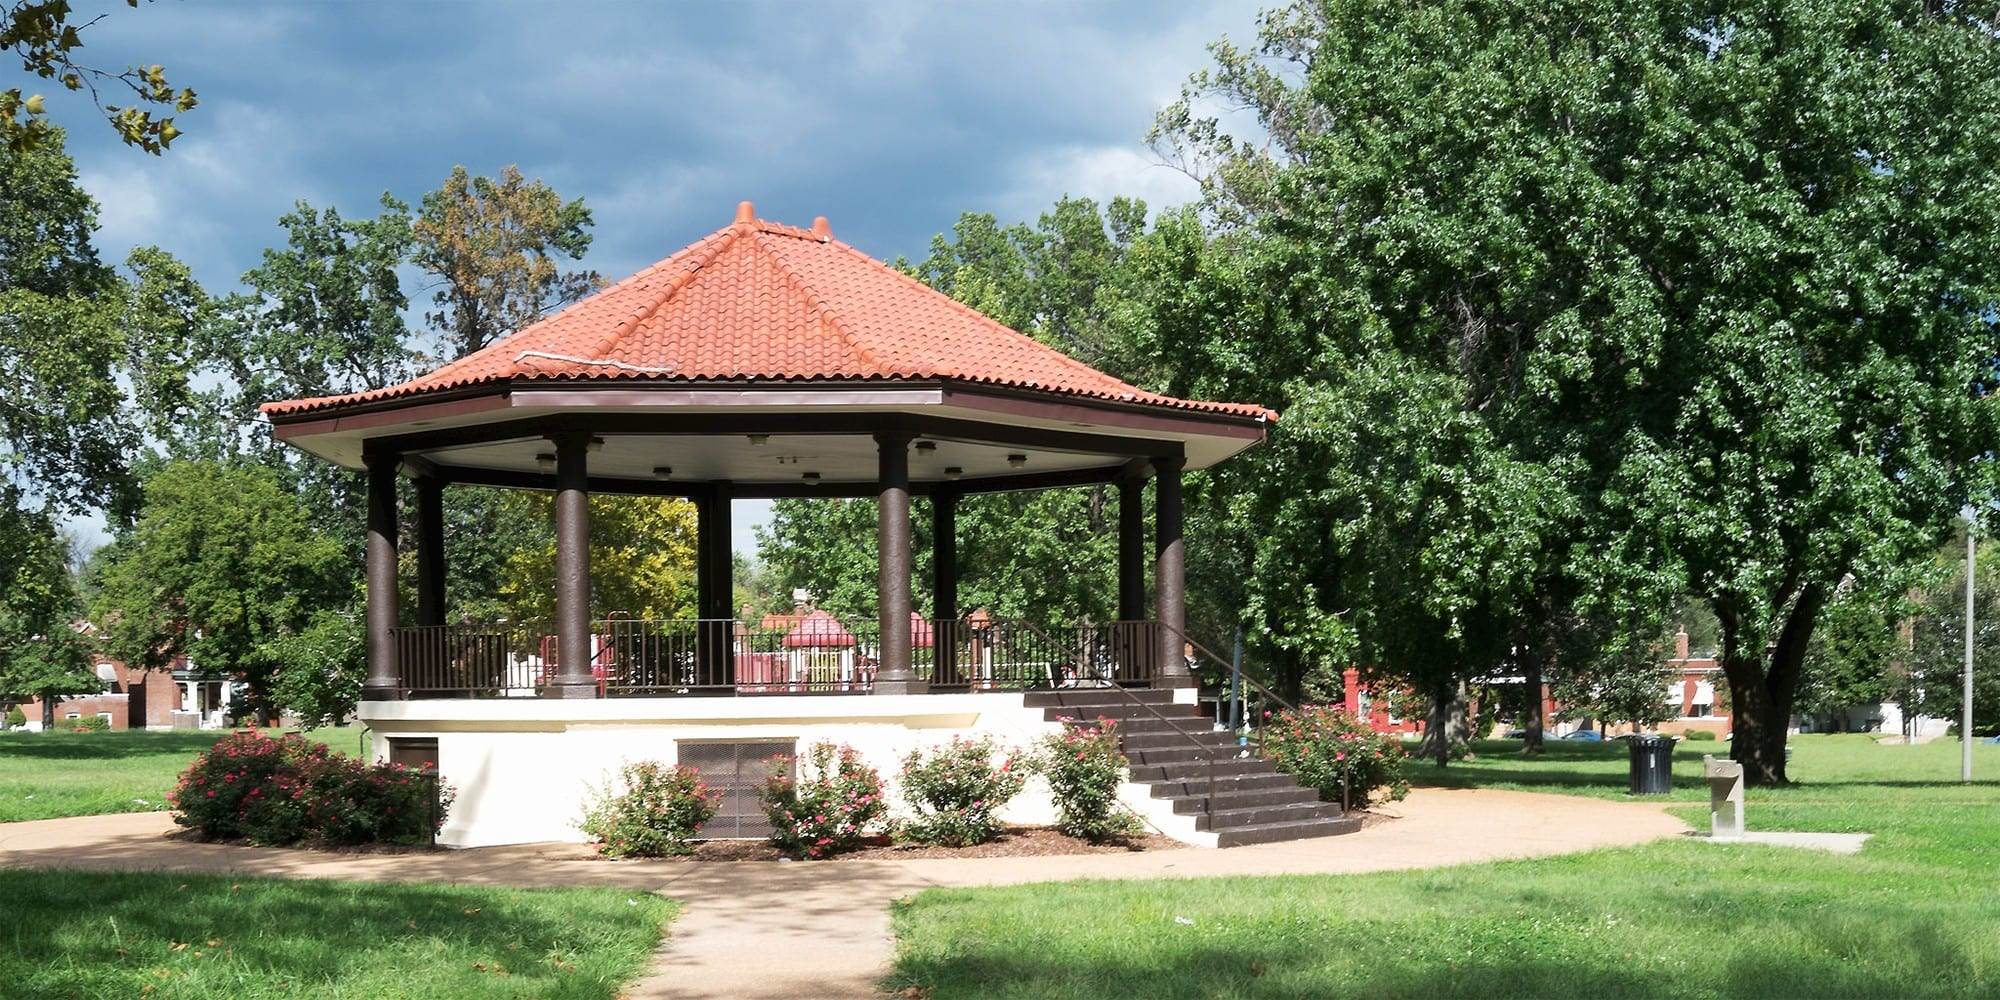 Gravois Park pavilion. Photo by Paul Sableman.